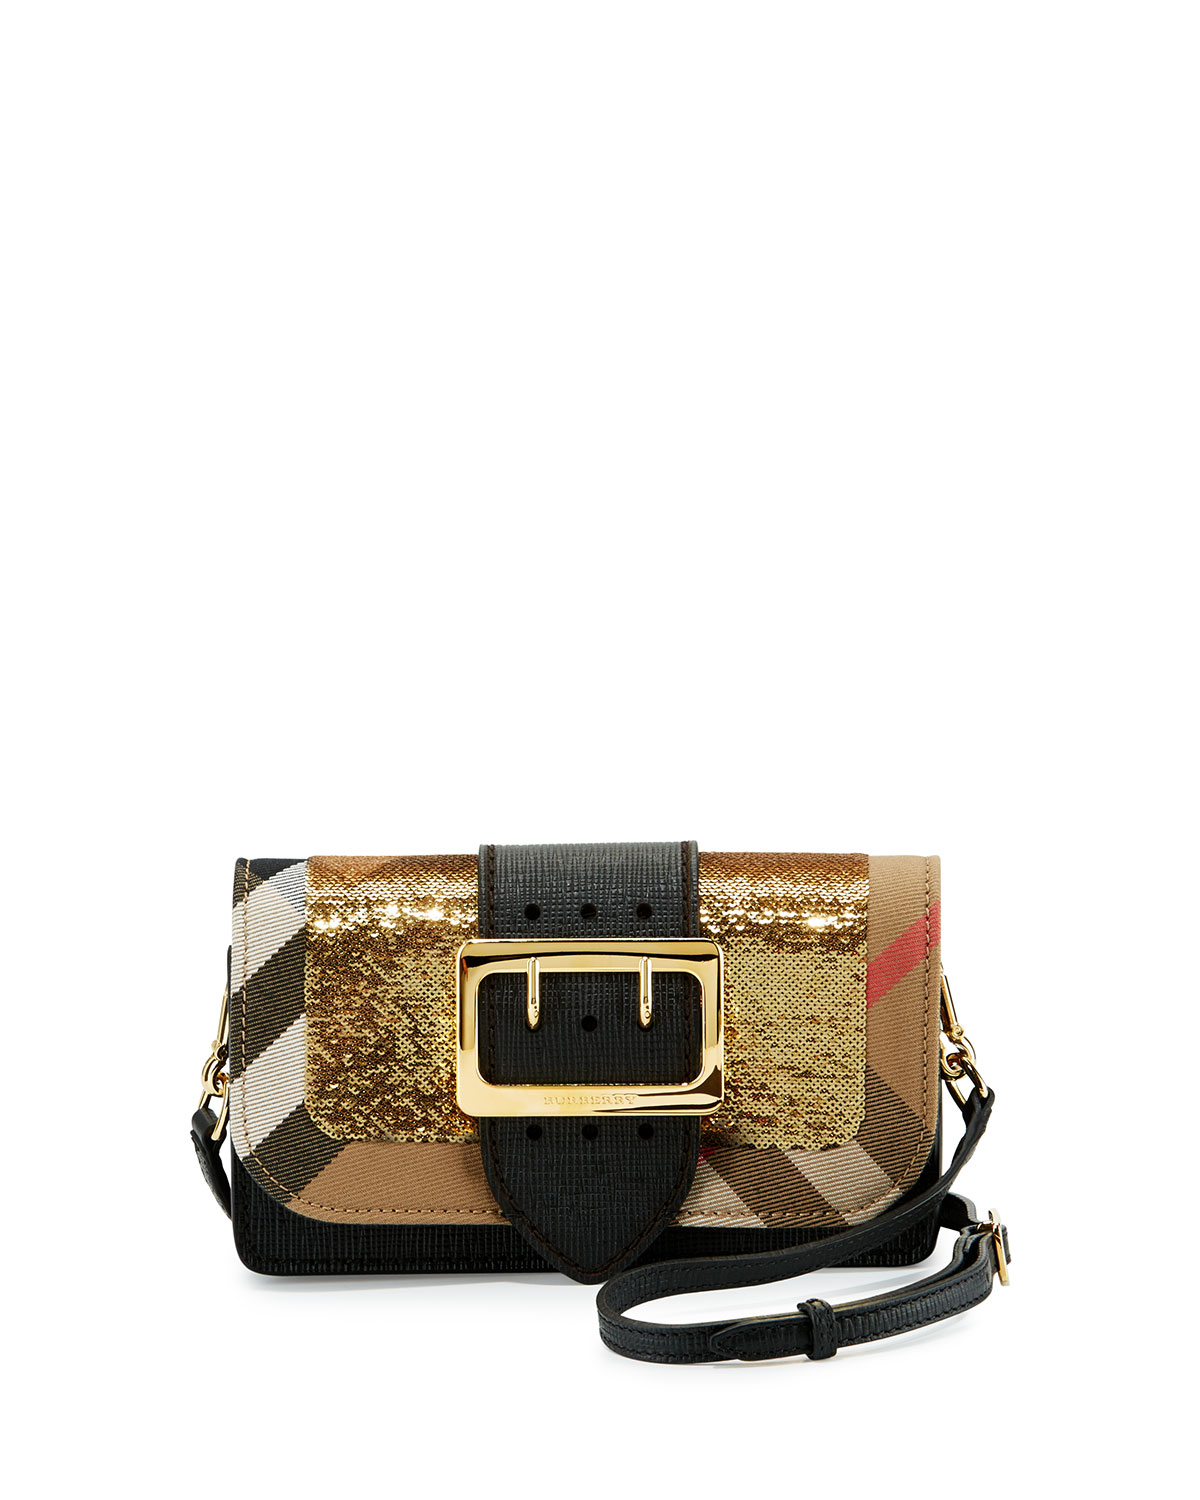 a56dca34bcec Burberry Small Buckle Sequined House Check Shoulder Bag